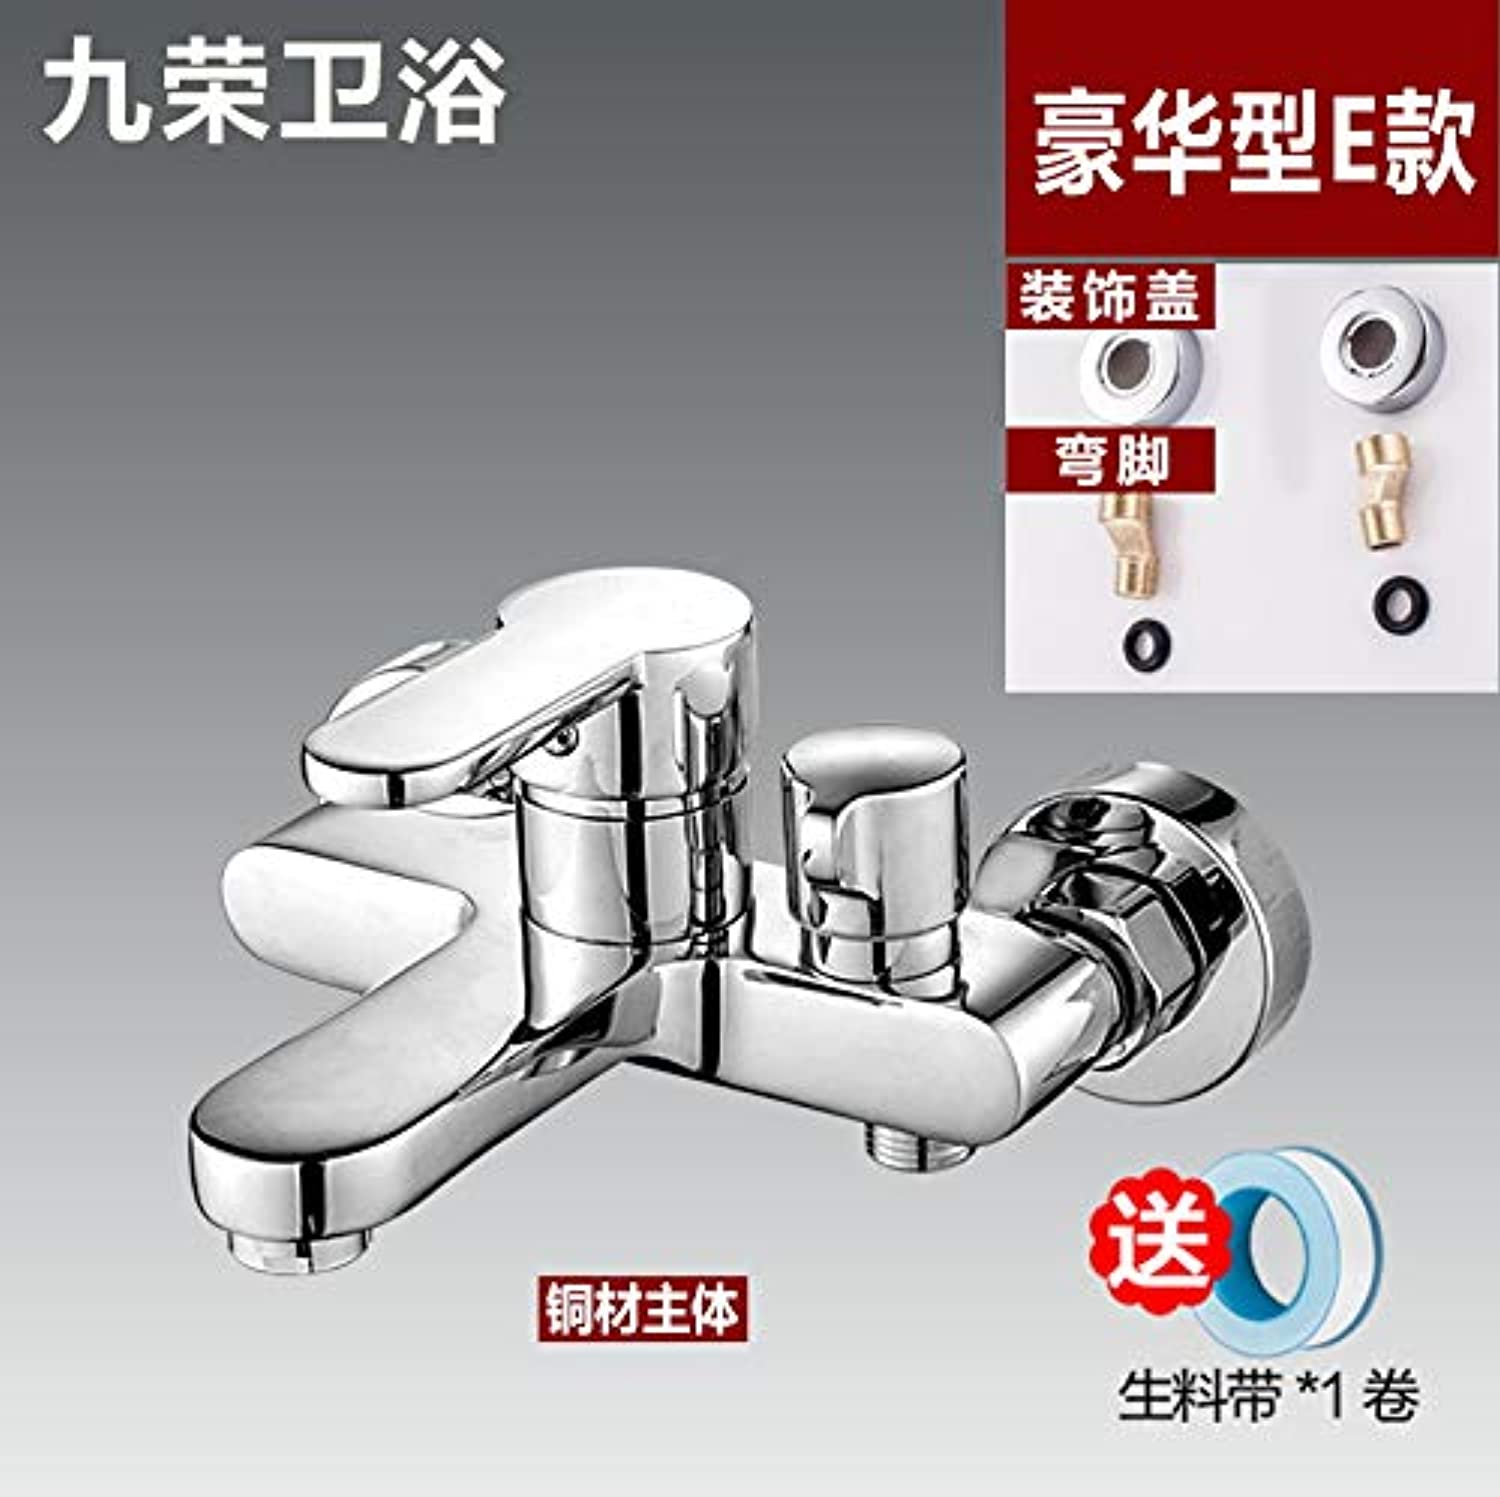 PajCzh Bathroom Fixturesbathtub Shower Faucet Wall Faucet Copper Hot And Cold Water Mixing Valve Bathroom Home Concealed Shower Set, Luxury E Section (Single Faucet + Accessories)